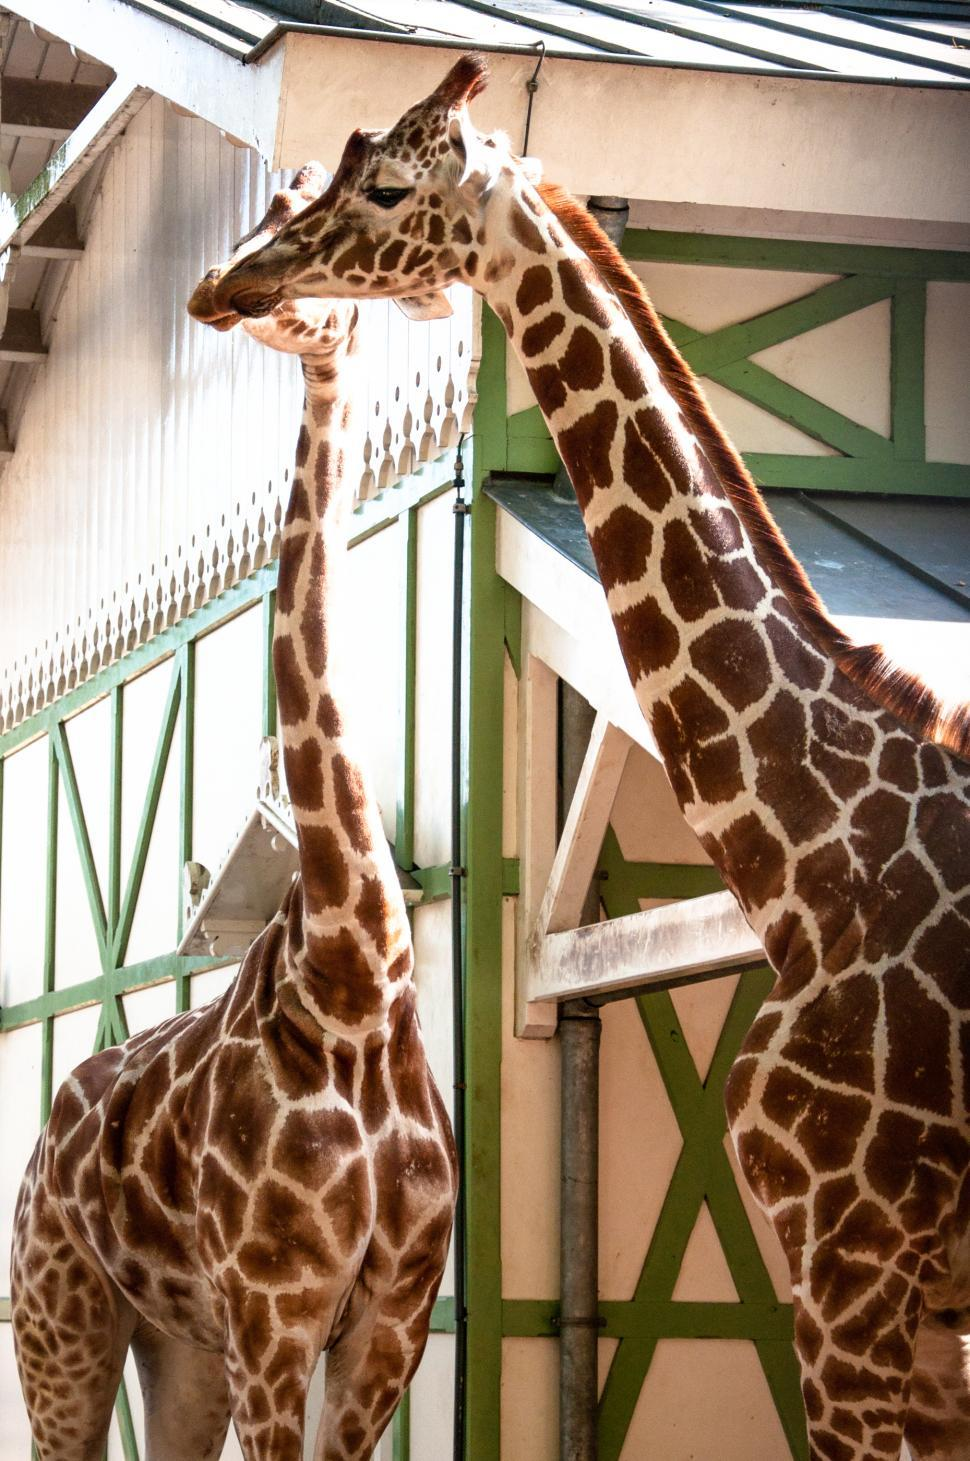 Download Free Stock HD Photo of Giraffe in the zoo Online